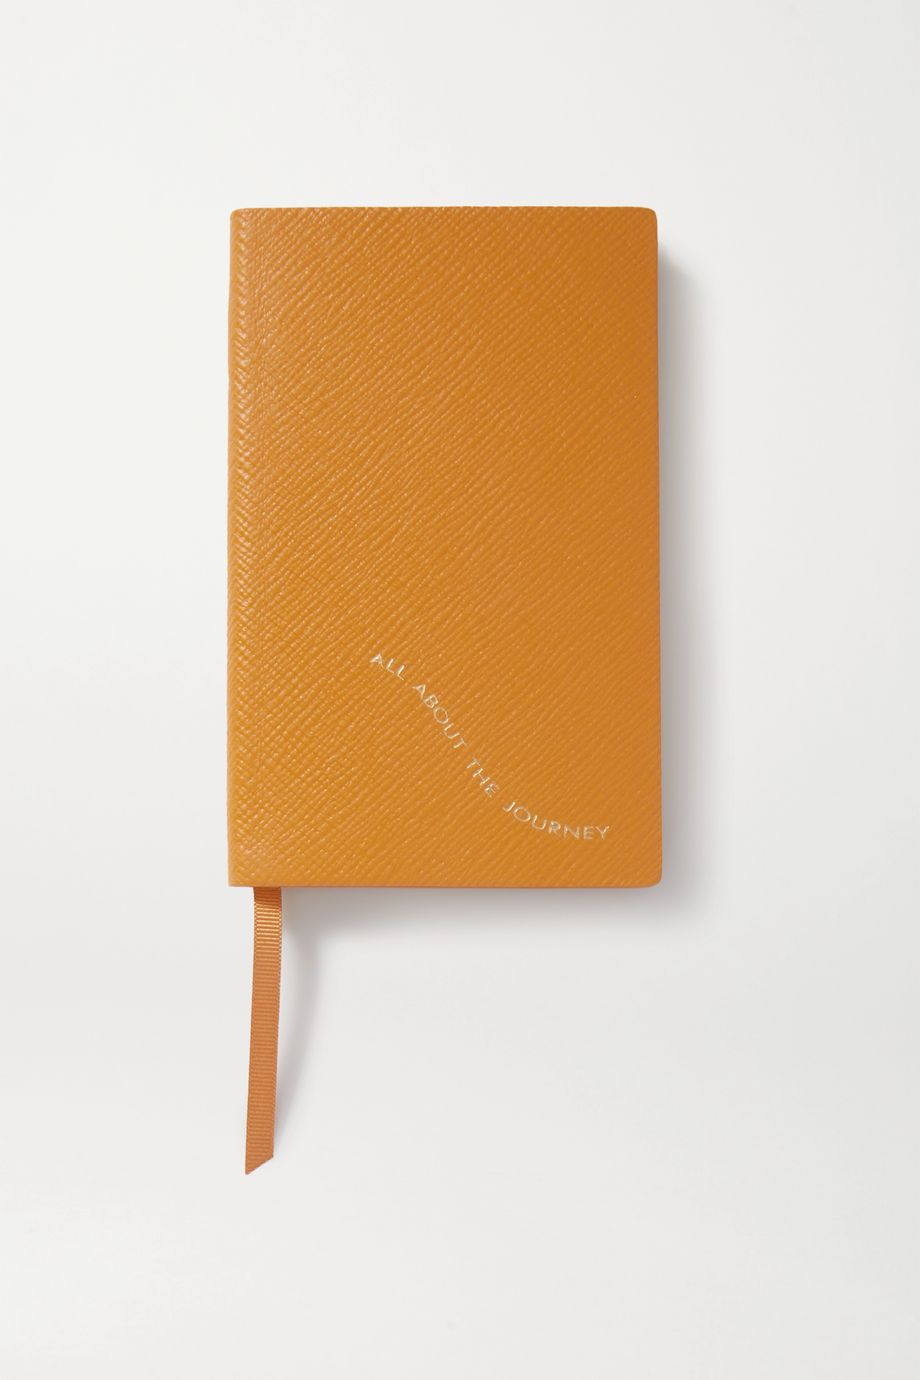 Smythson Panama All About The Journey textured-leather notebook